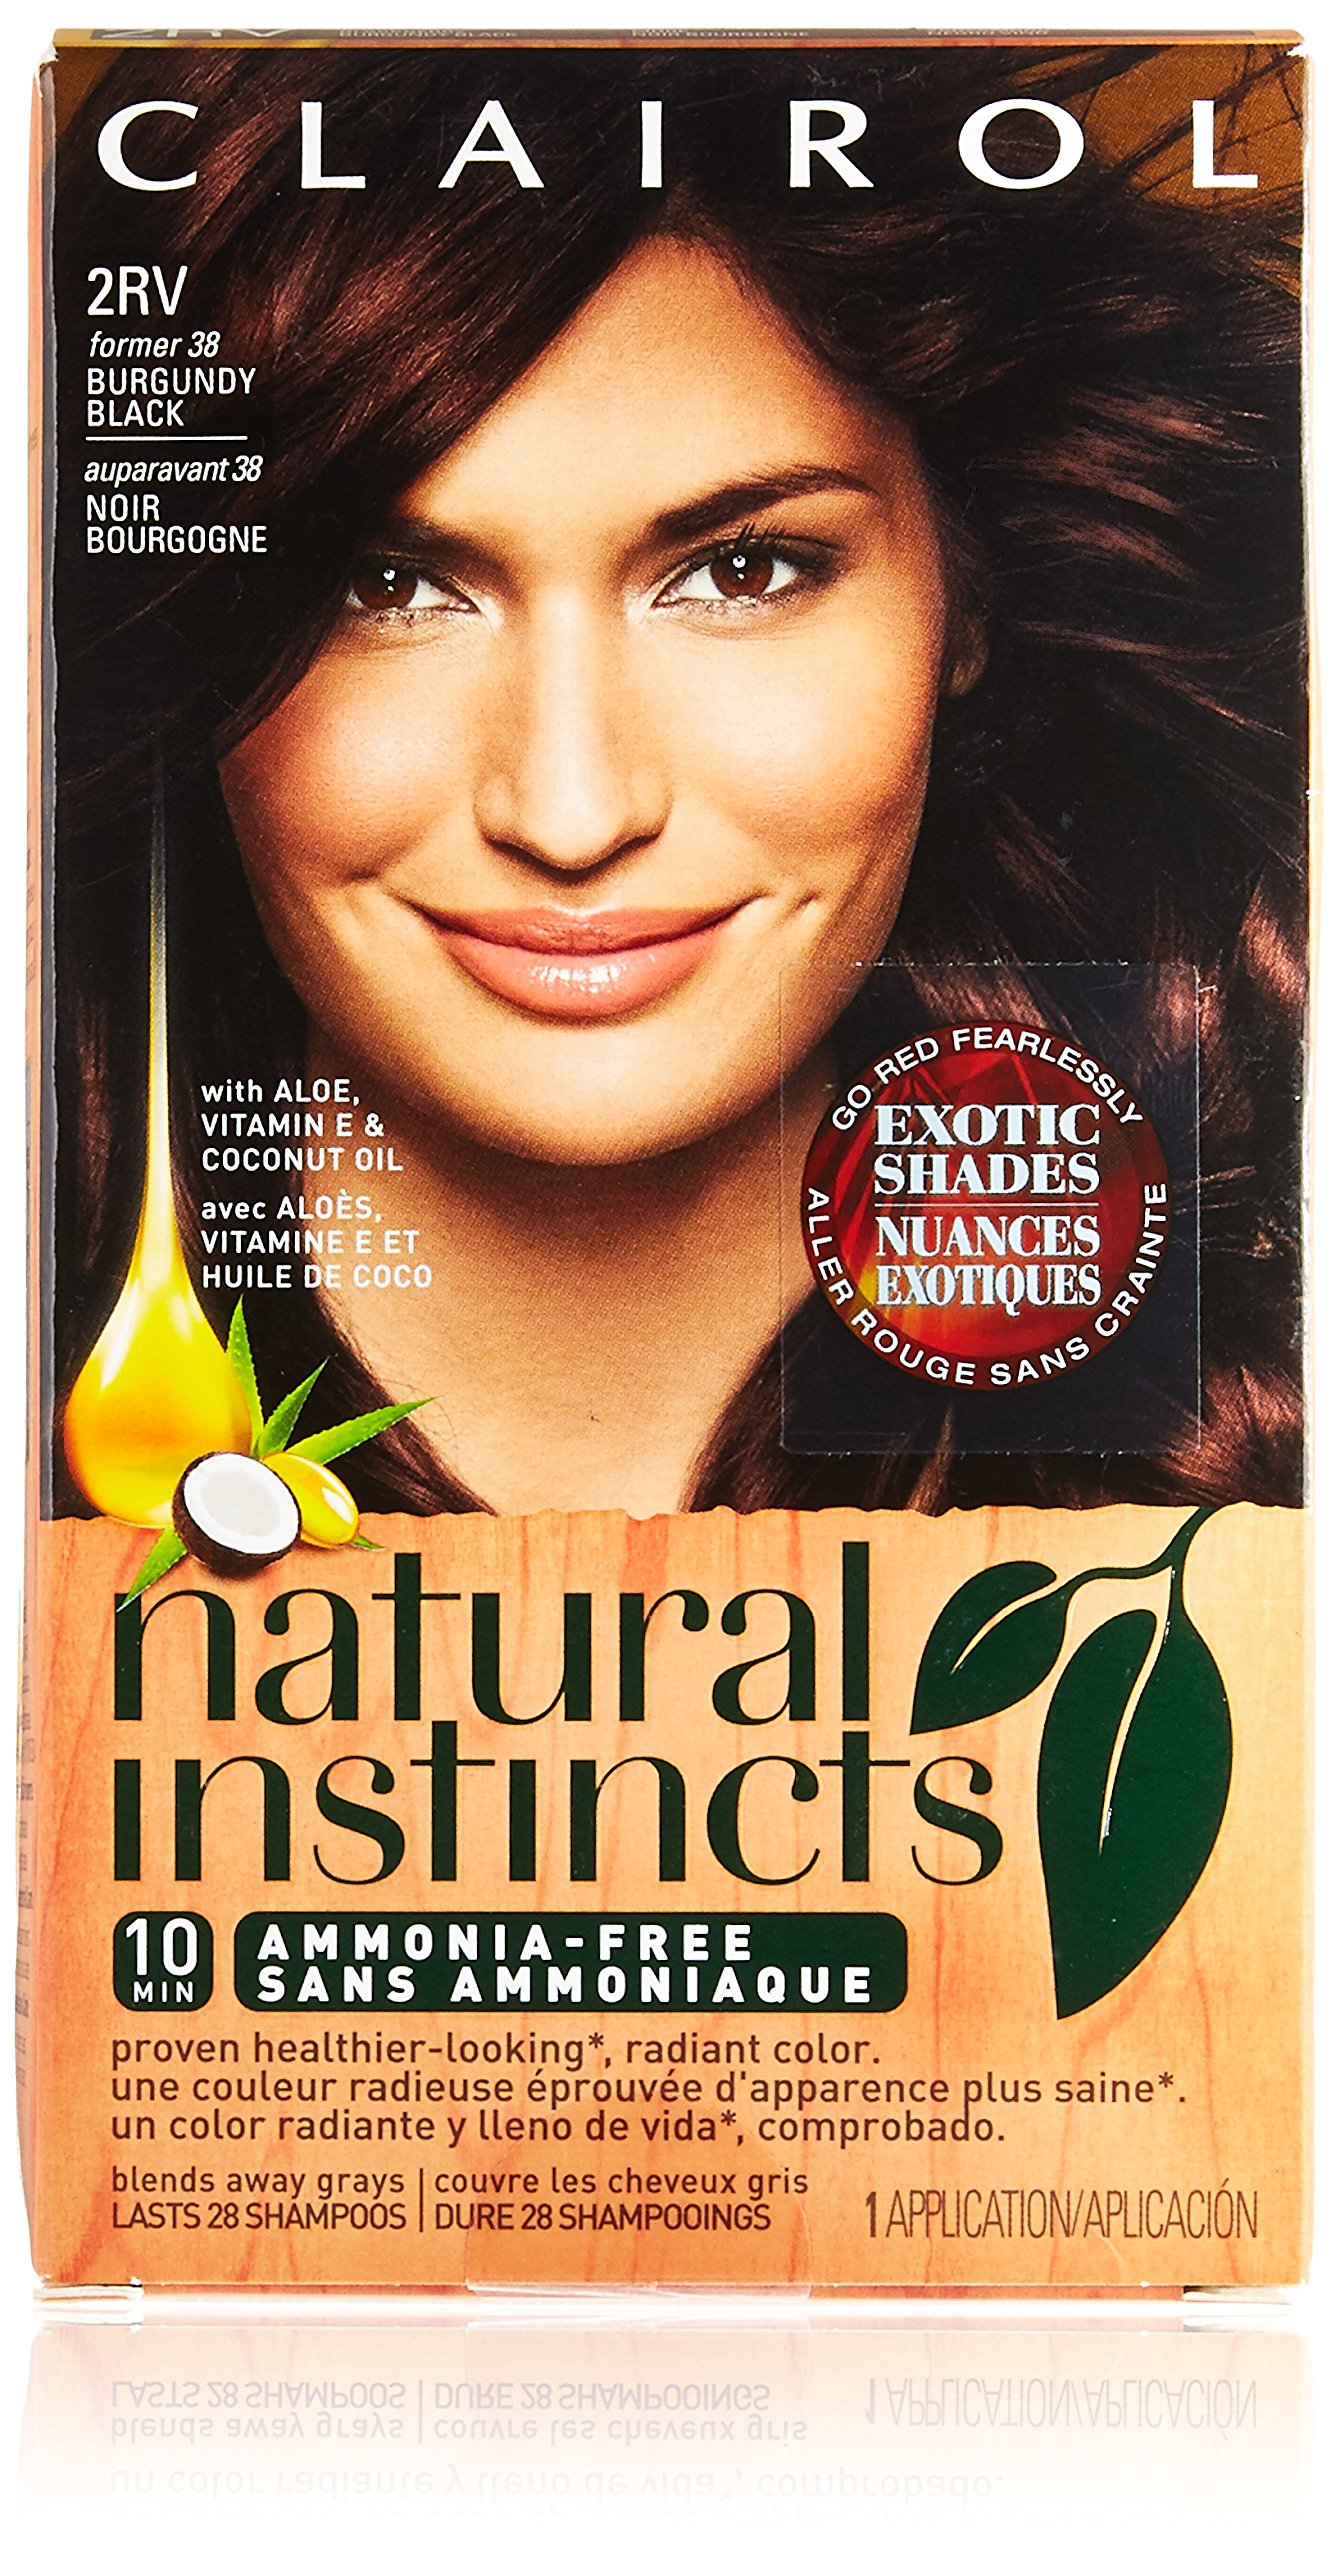 Clairol Natural Instincts, 2RV / 38 Blackberry Burgundy Black, Semi-Permanent Hair Color, 1 Kit by Clairol